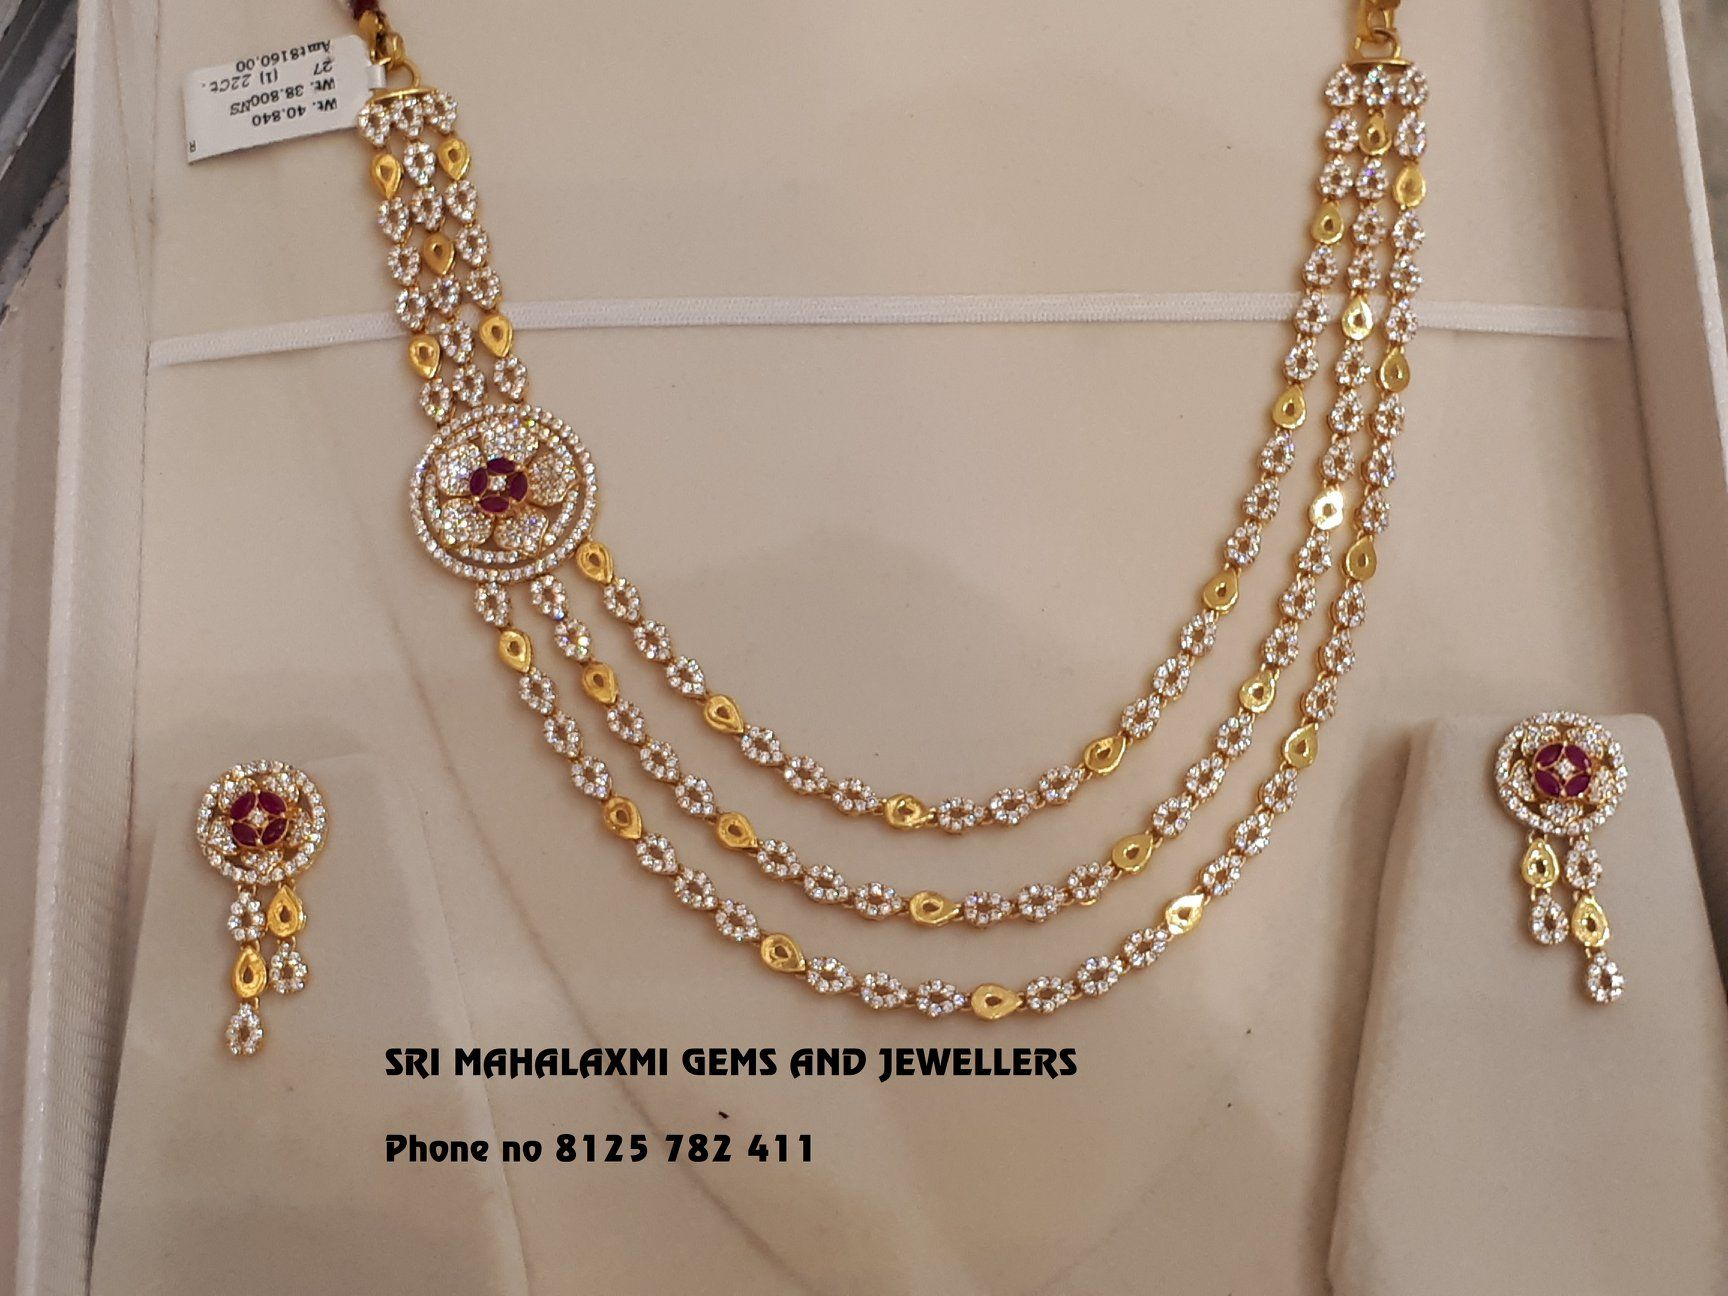 dba7d698abf Gold Jewelry Making. New designs of Cz Necklace chokers added in very light  weight range. Showing below is 40 gm 3 step Necklace plus ear rings 9 gms.